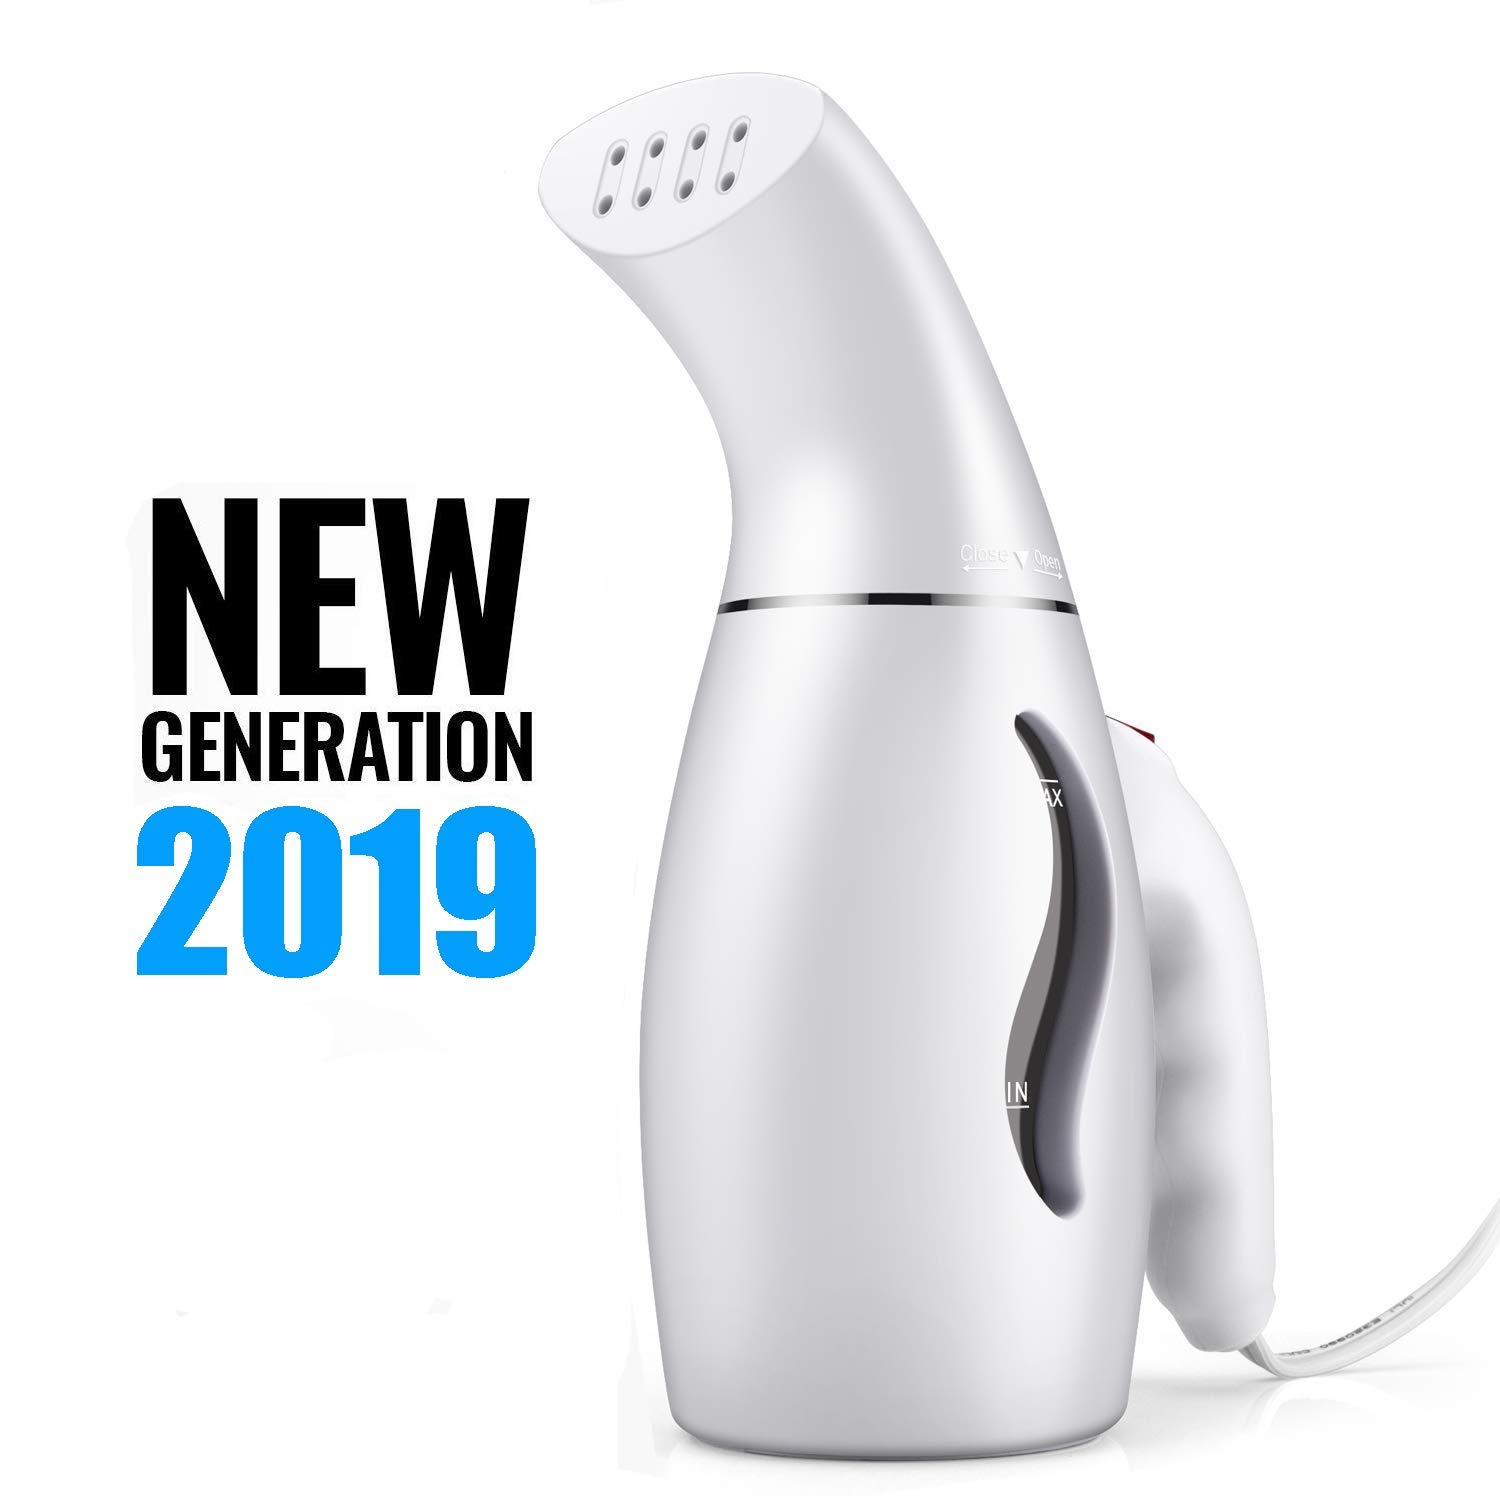 Steamer for Clothes, 110V Handheld Clothes Steamers. Powerful Steamer Wrinkle Remover. Clean, Sterilize and Steamer Garment and Soft Fabric. Portable, Compact-Travel/Home. product image